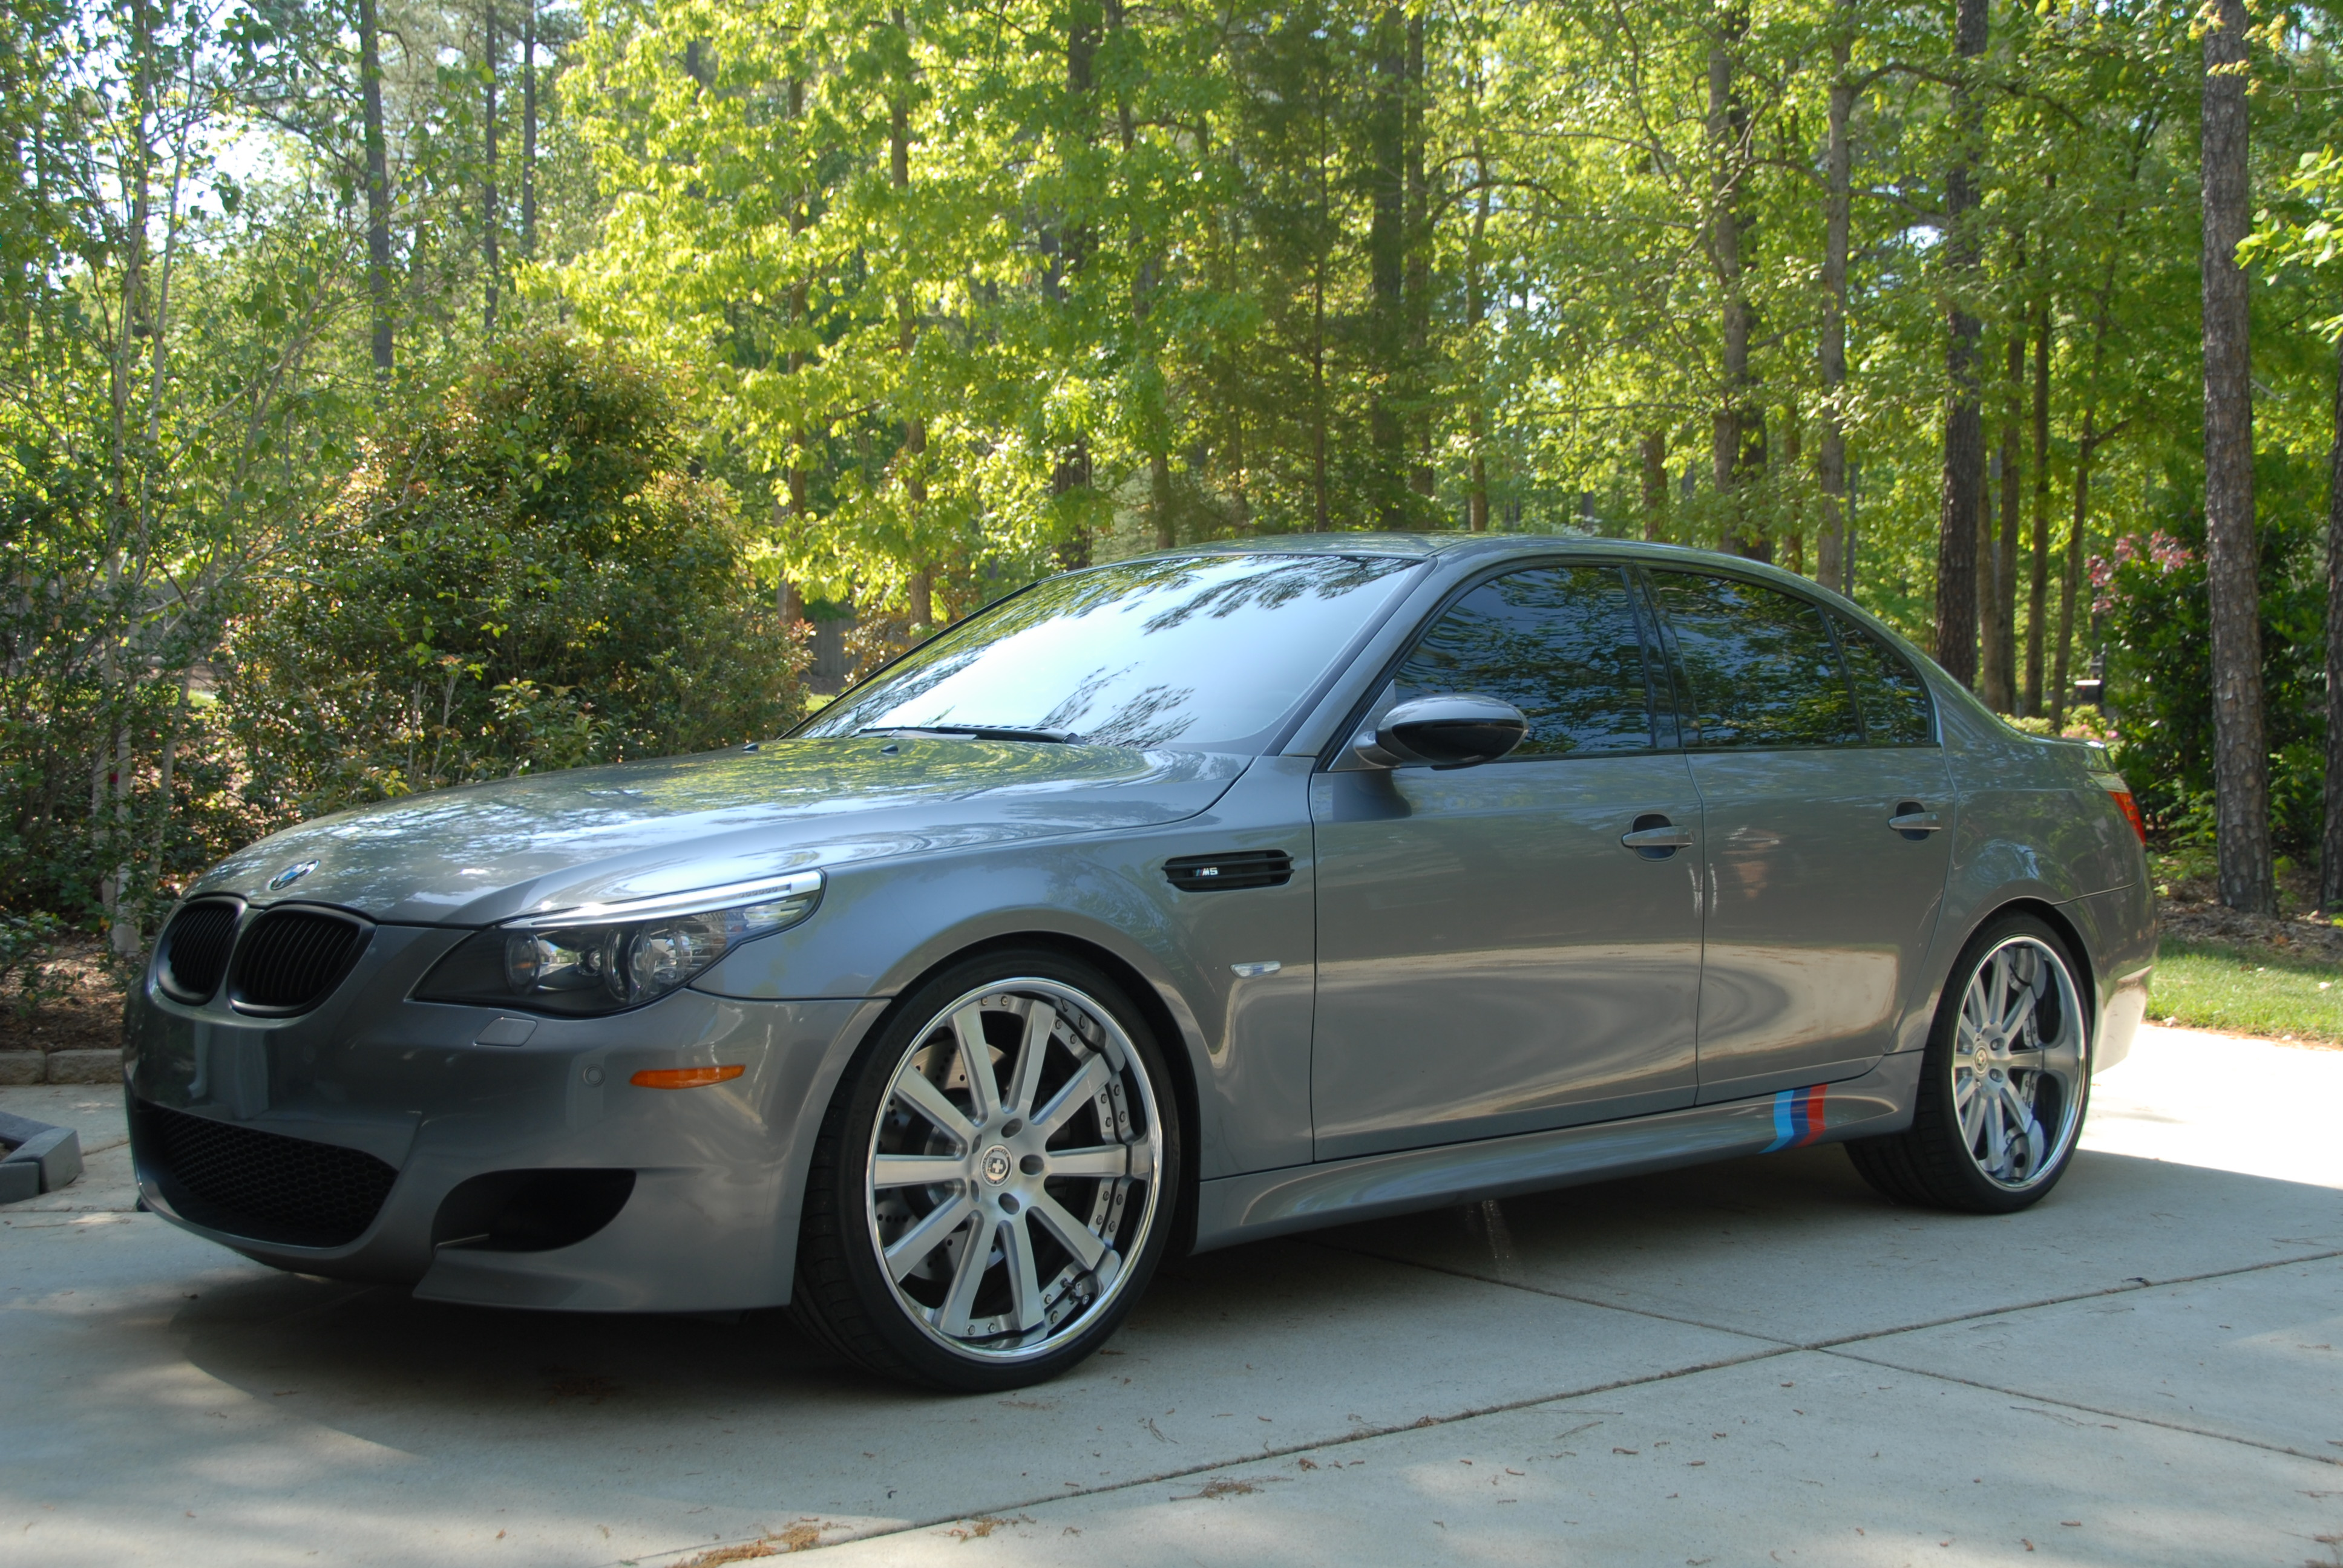 Opinions On Space Gray Page 2 Bmw M5 Forum And M6 Forums